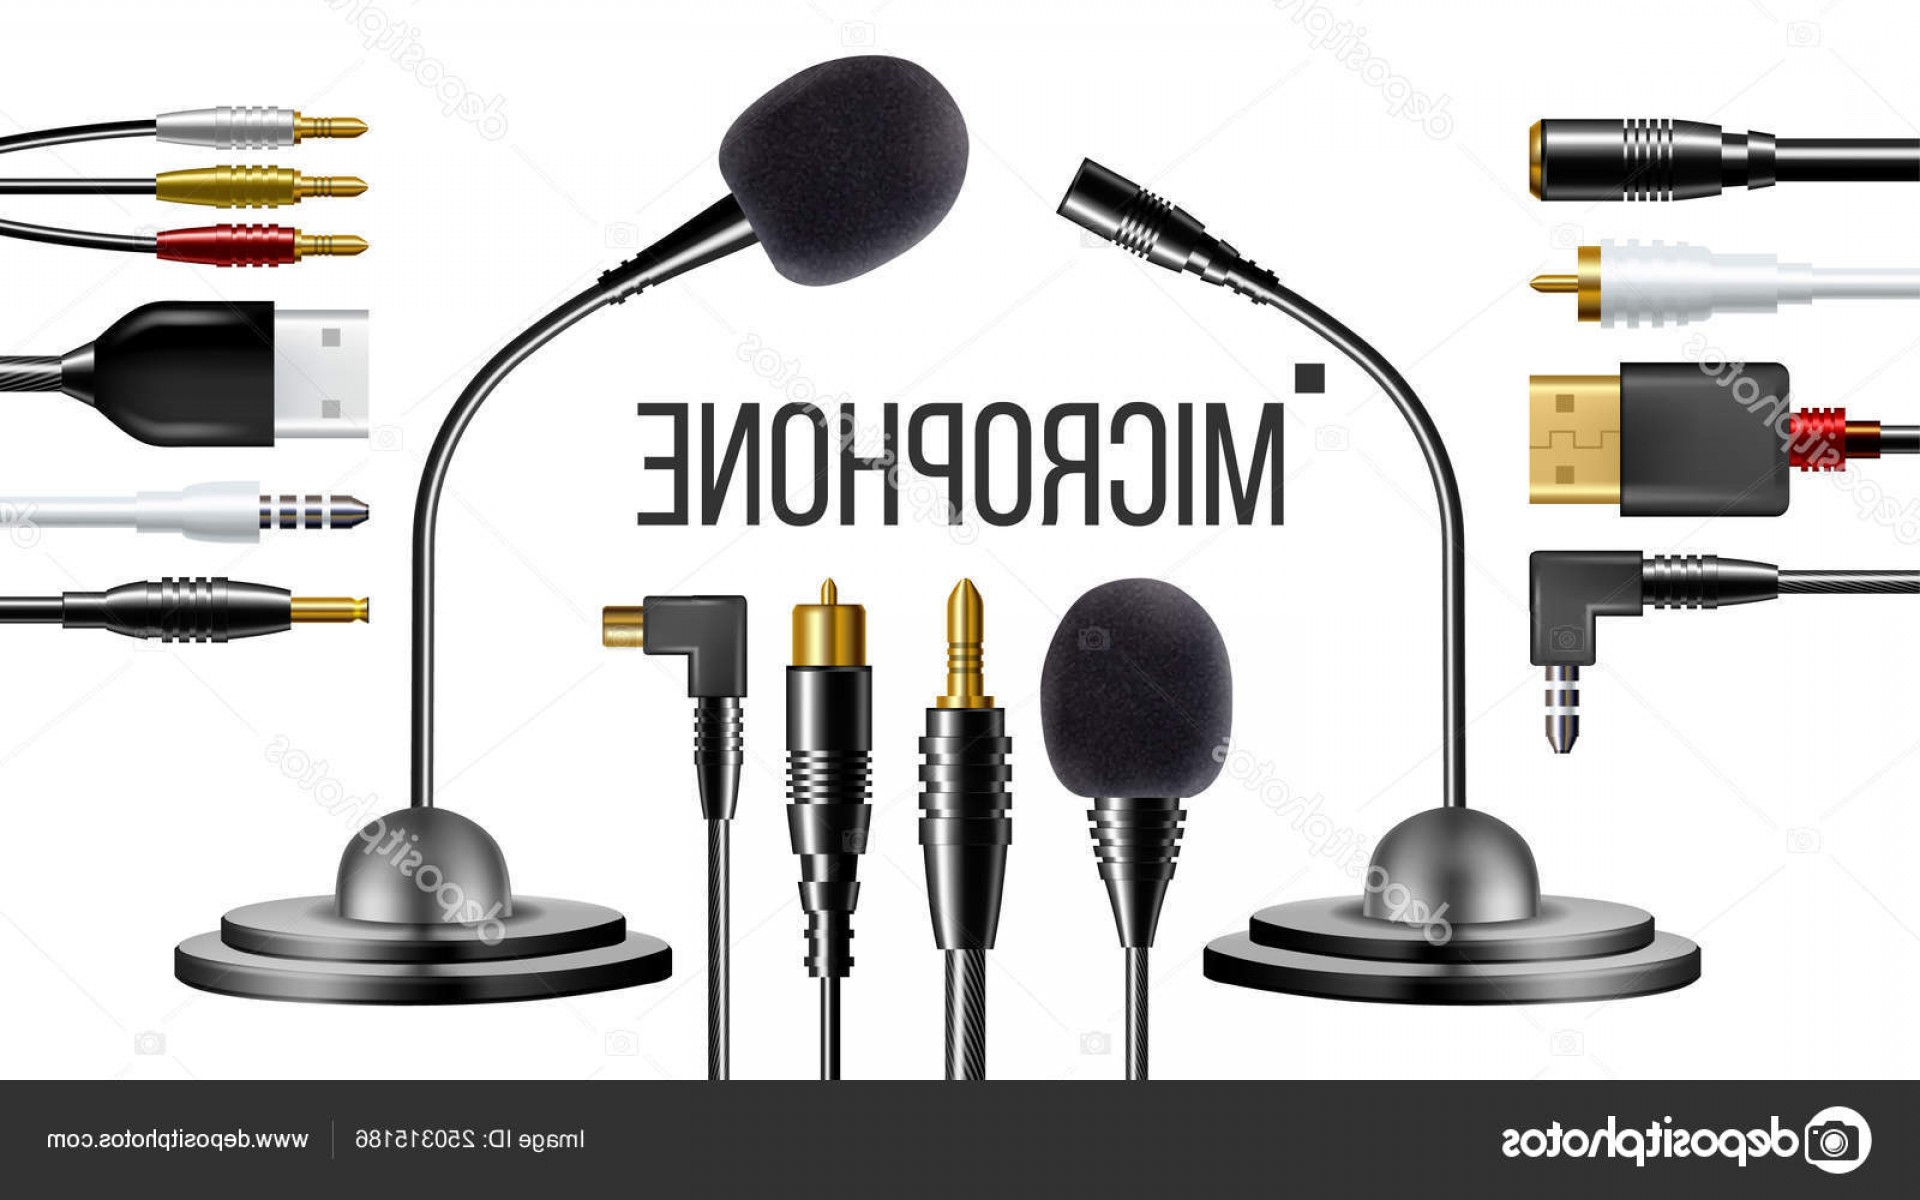 Microphone Recording Vector: Stock Illustration Microphone For Clothes Voice Recording